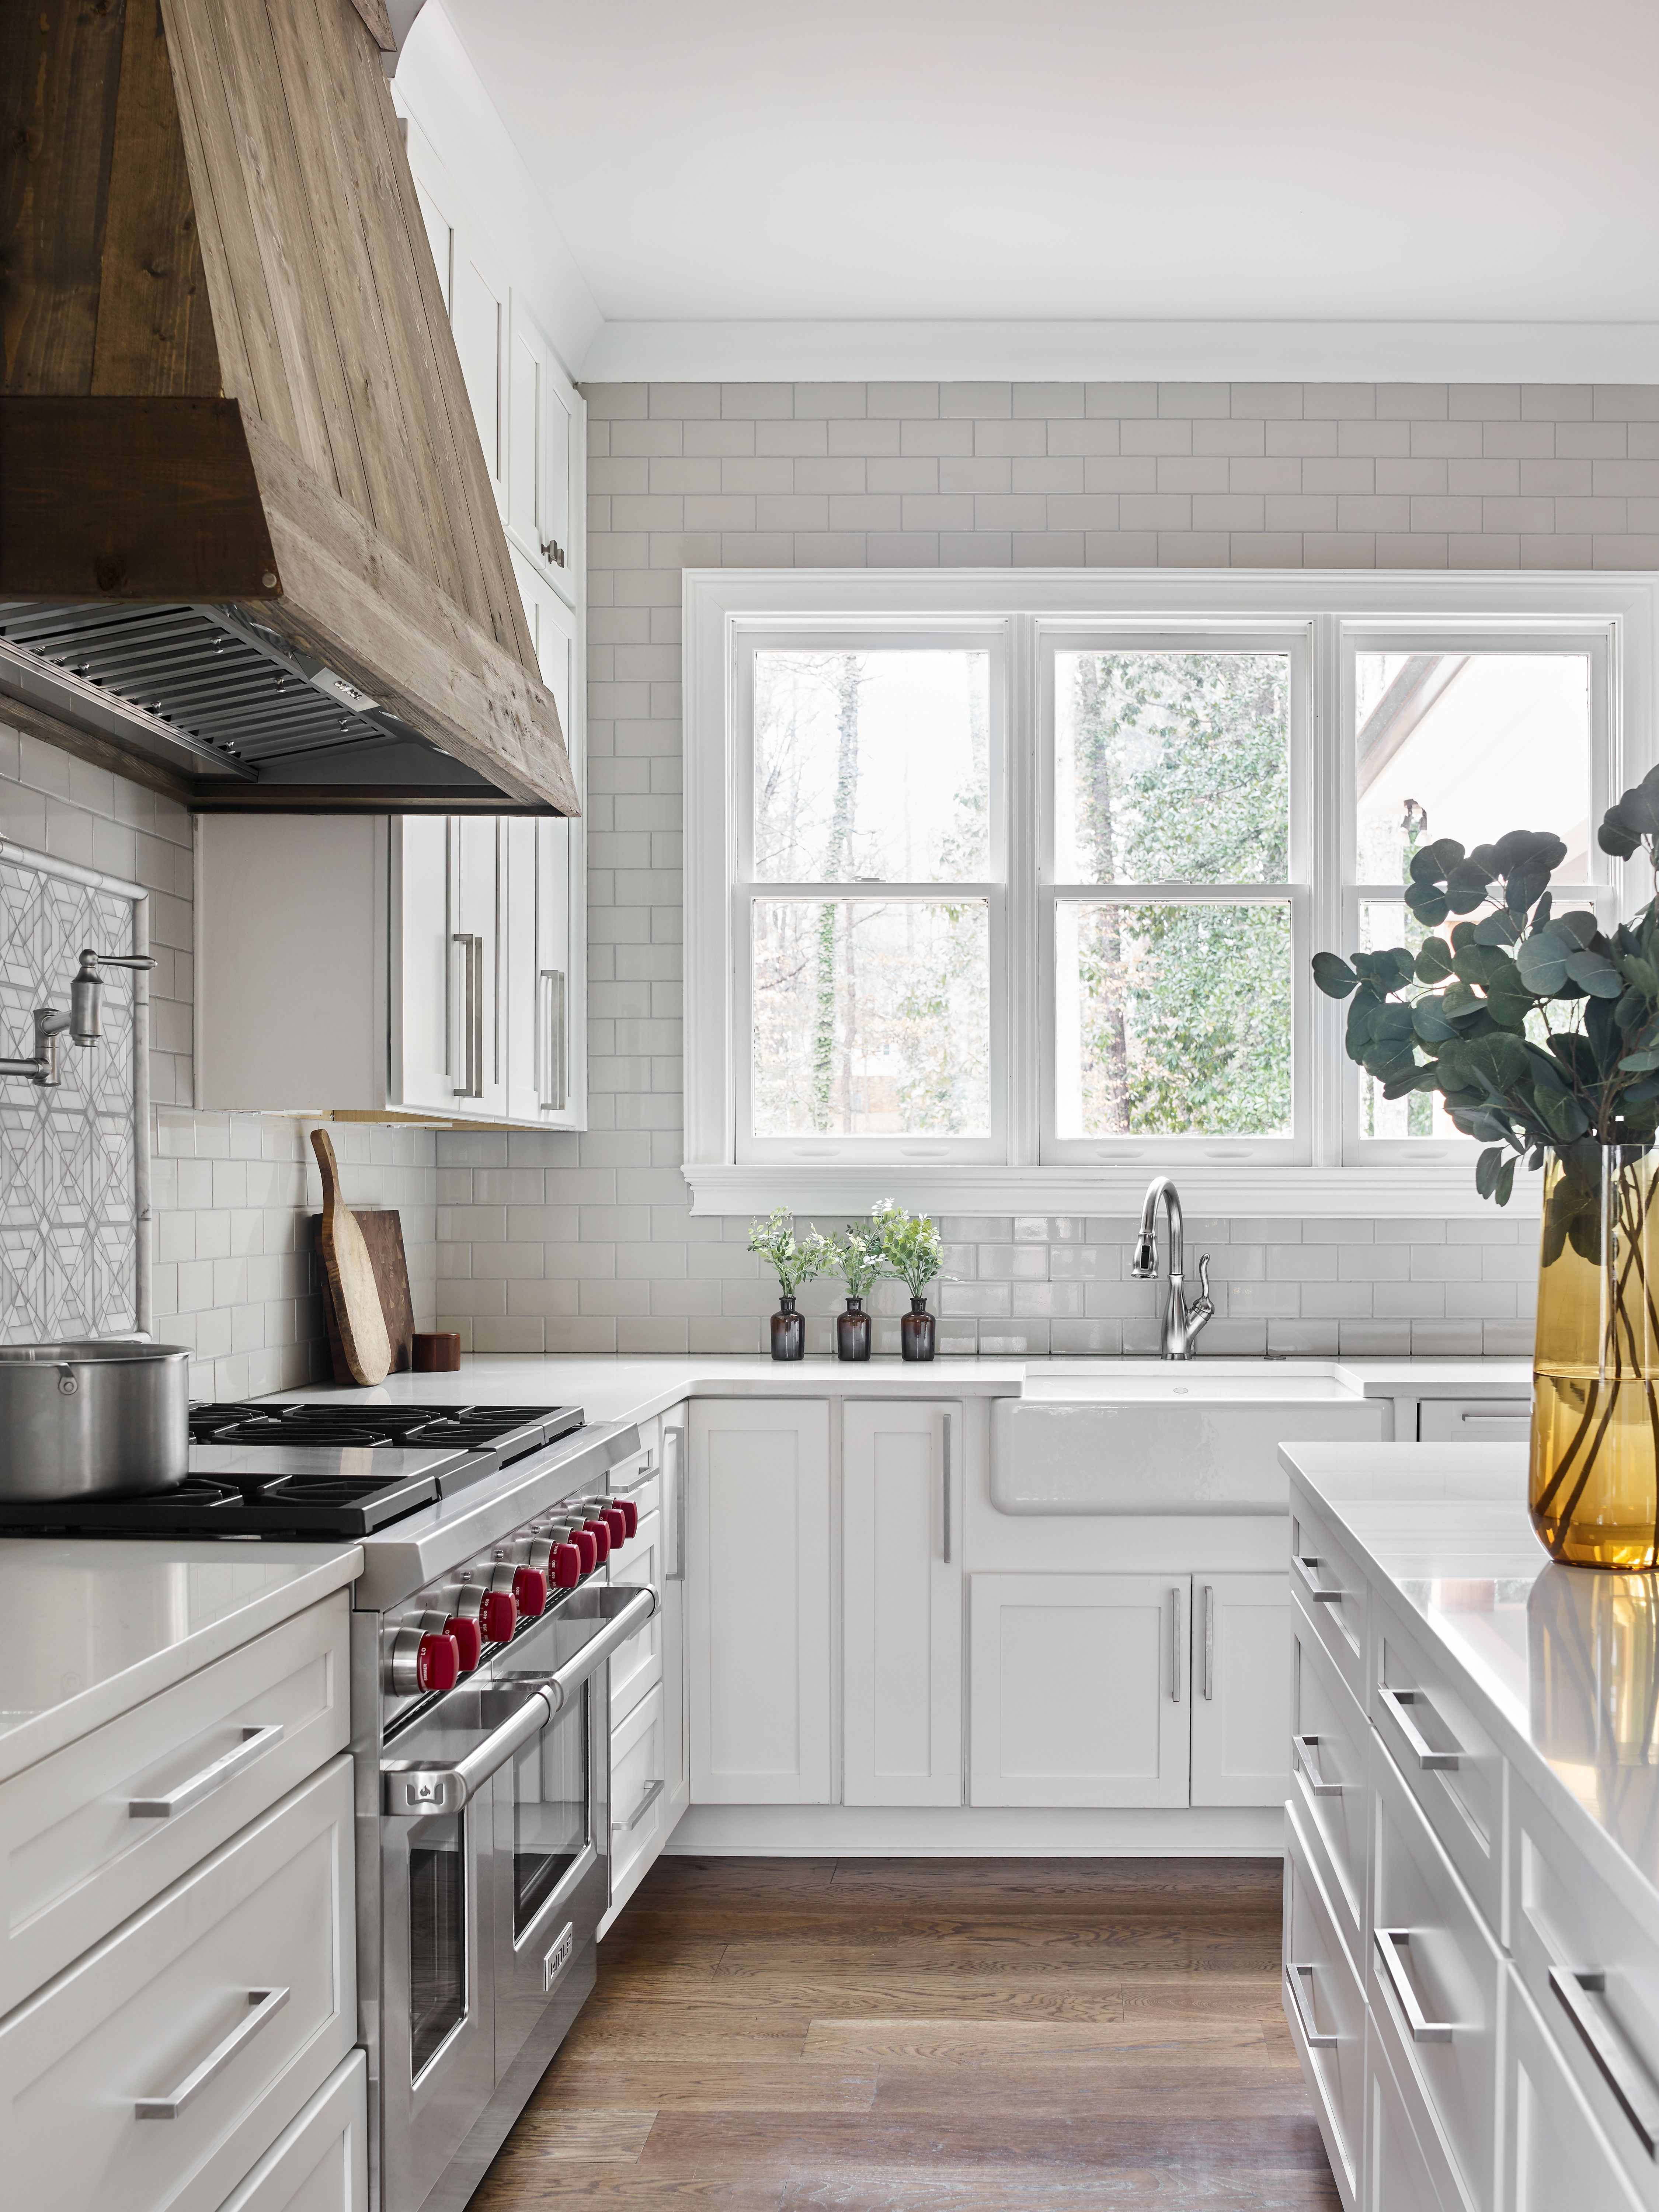 Modern Farmhouse Kitchen in 2020 Kitchen styles